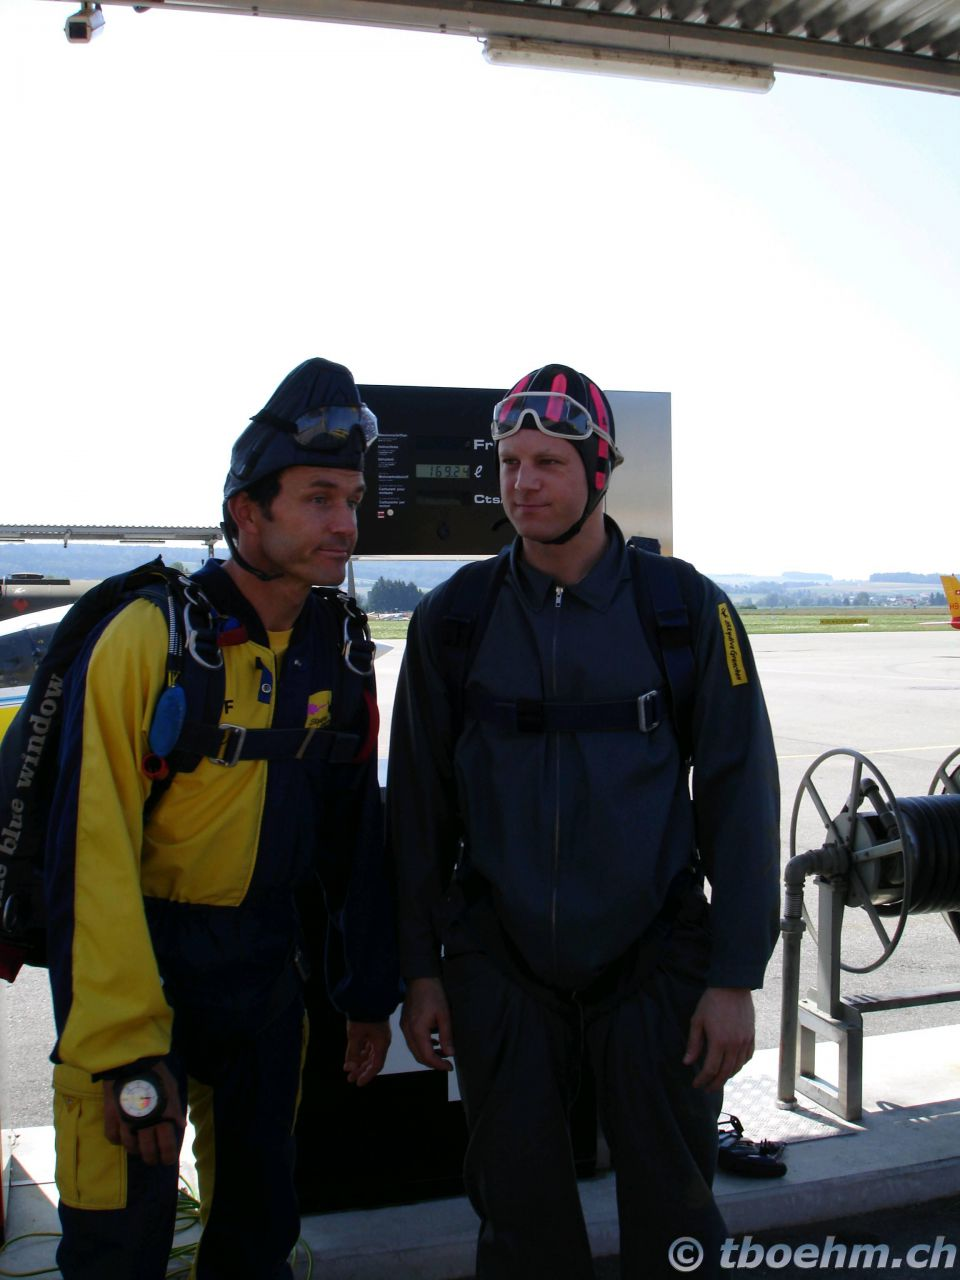 skydive_grenchen_16_07_2006_15_20121125_2088536980